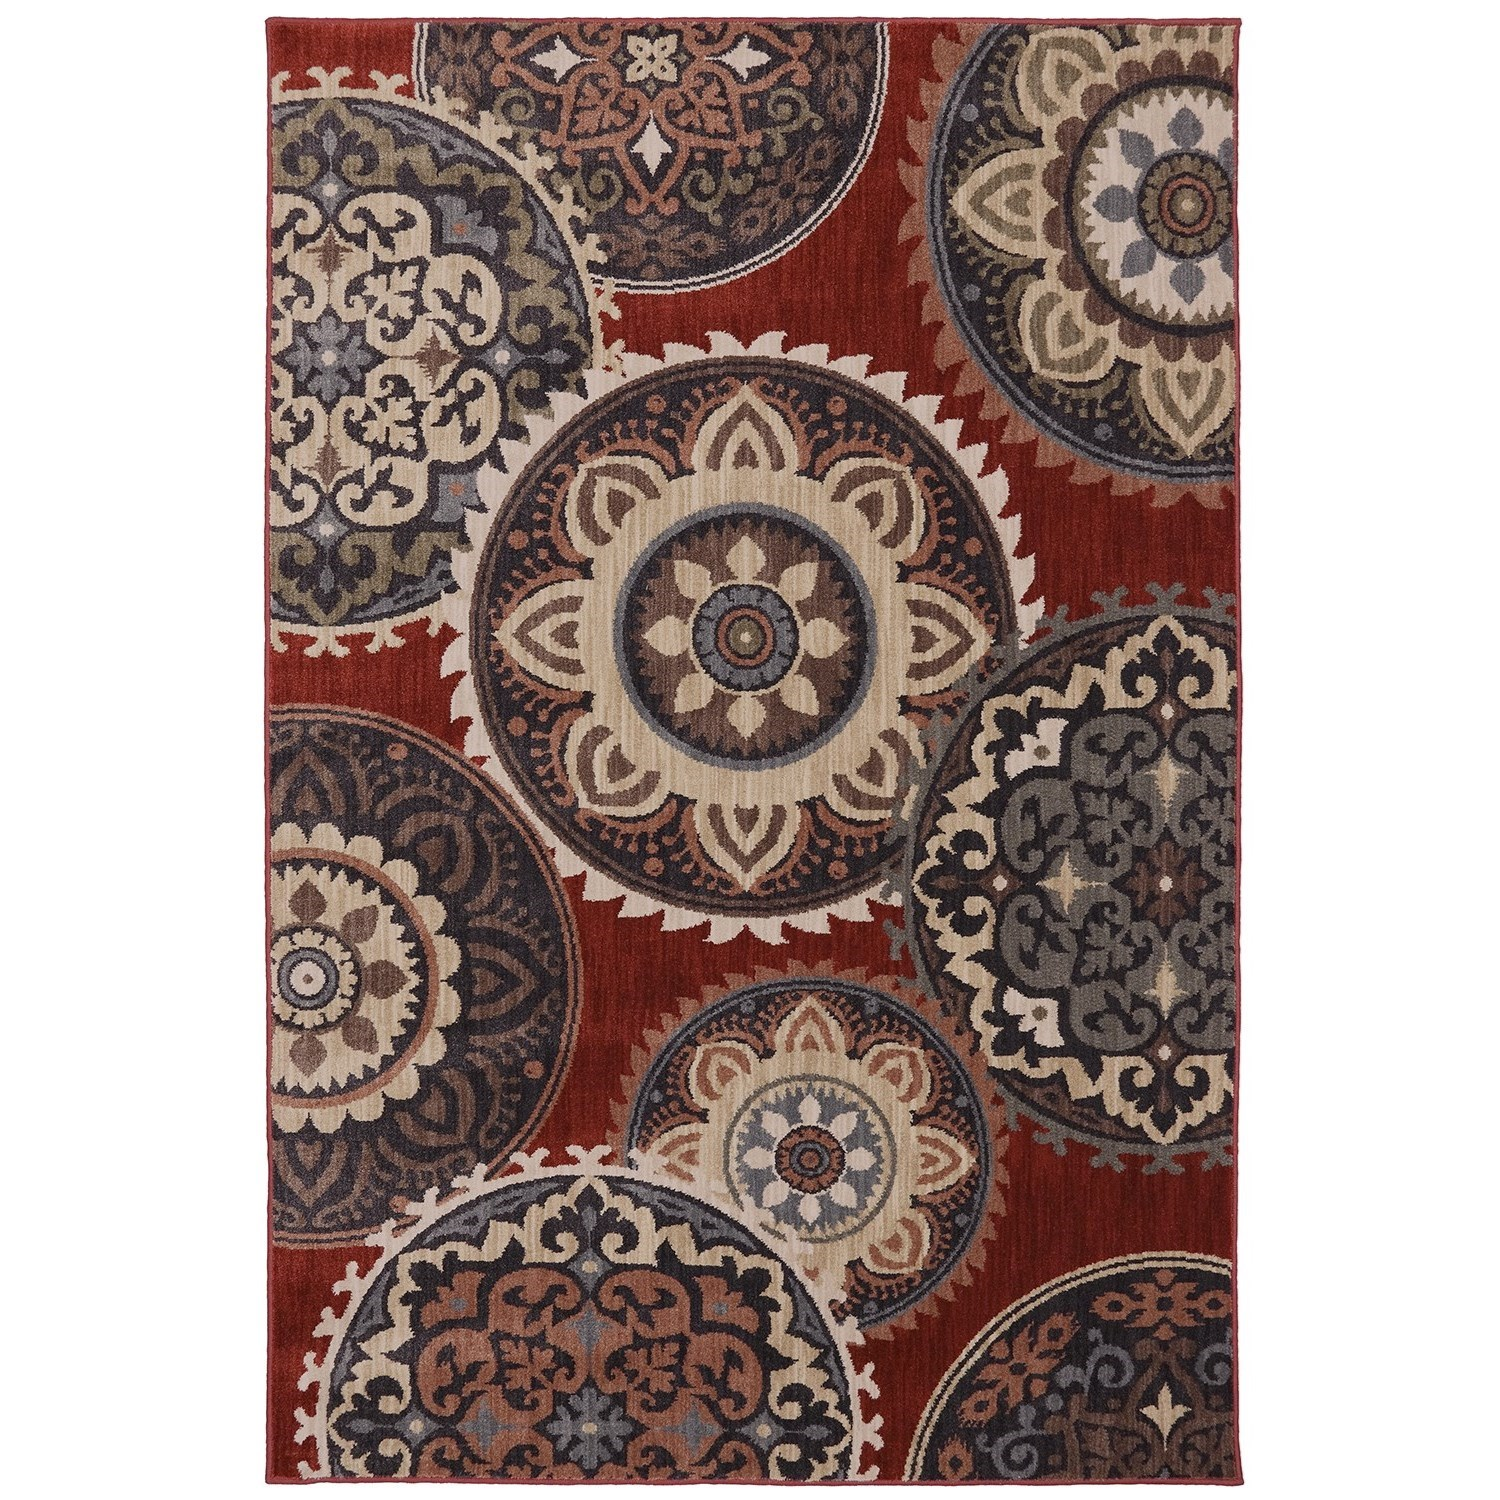 """Dryden 3' 6""""x5' 6"""" Summit View Ashen Area Rug by American Rug Craftsmen at Alison Craig Home Furnishings"""